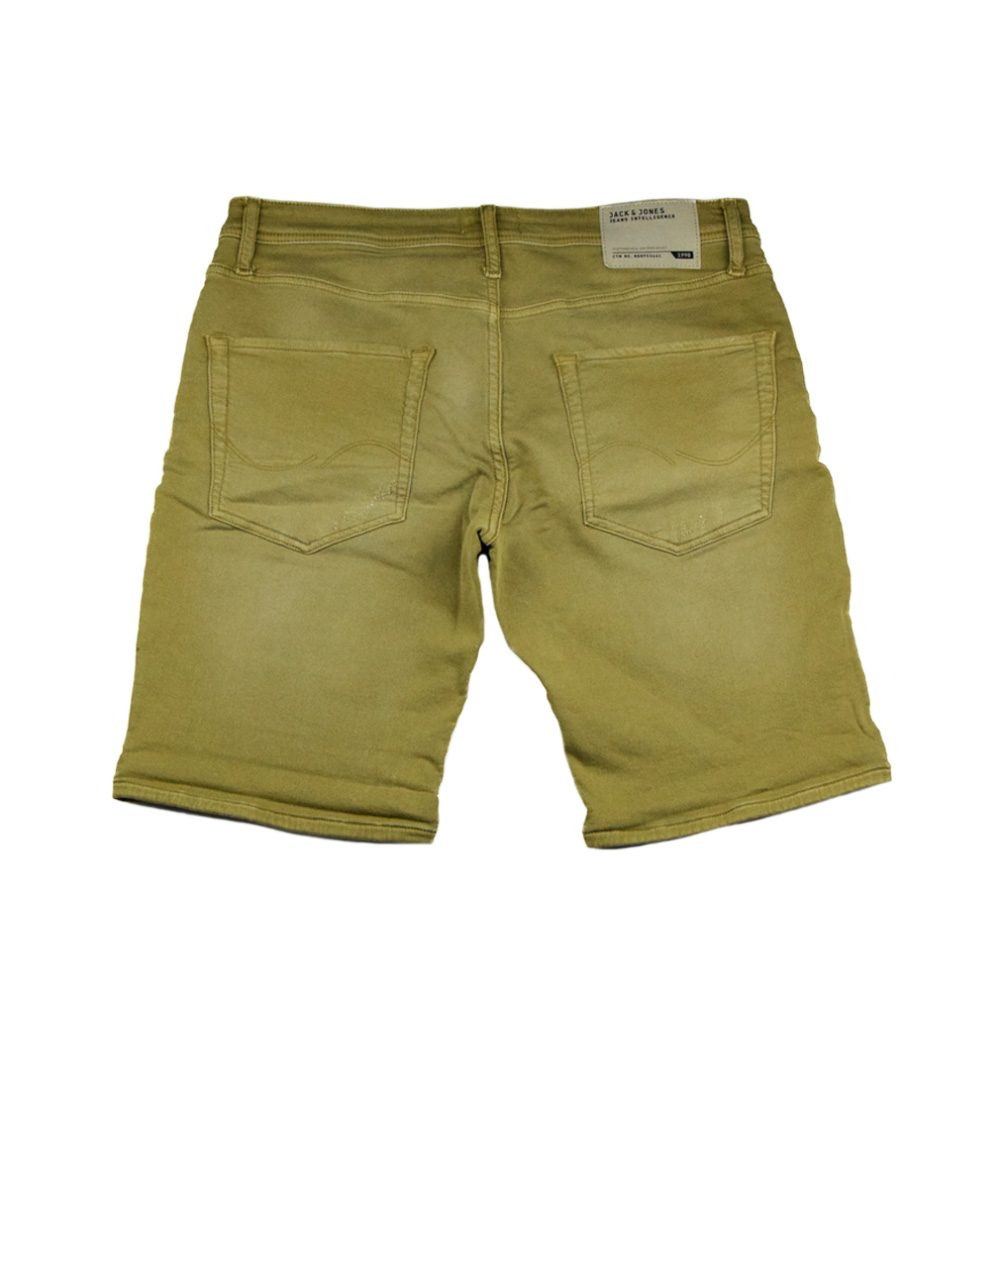 Jack & Jones Rick Org Shorts Cornstalk (12122429)